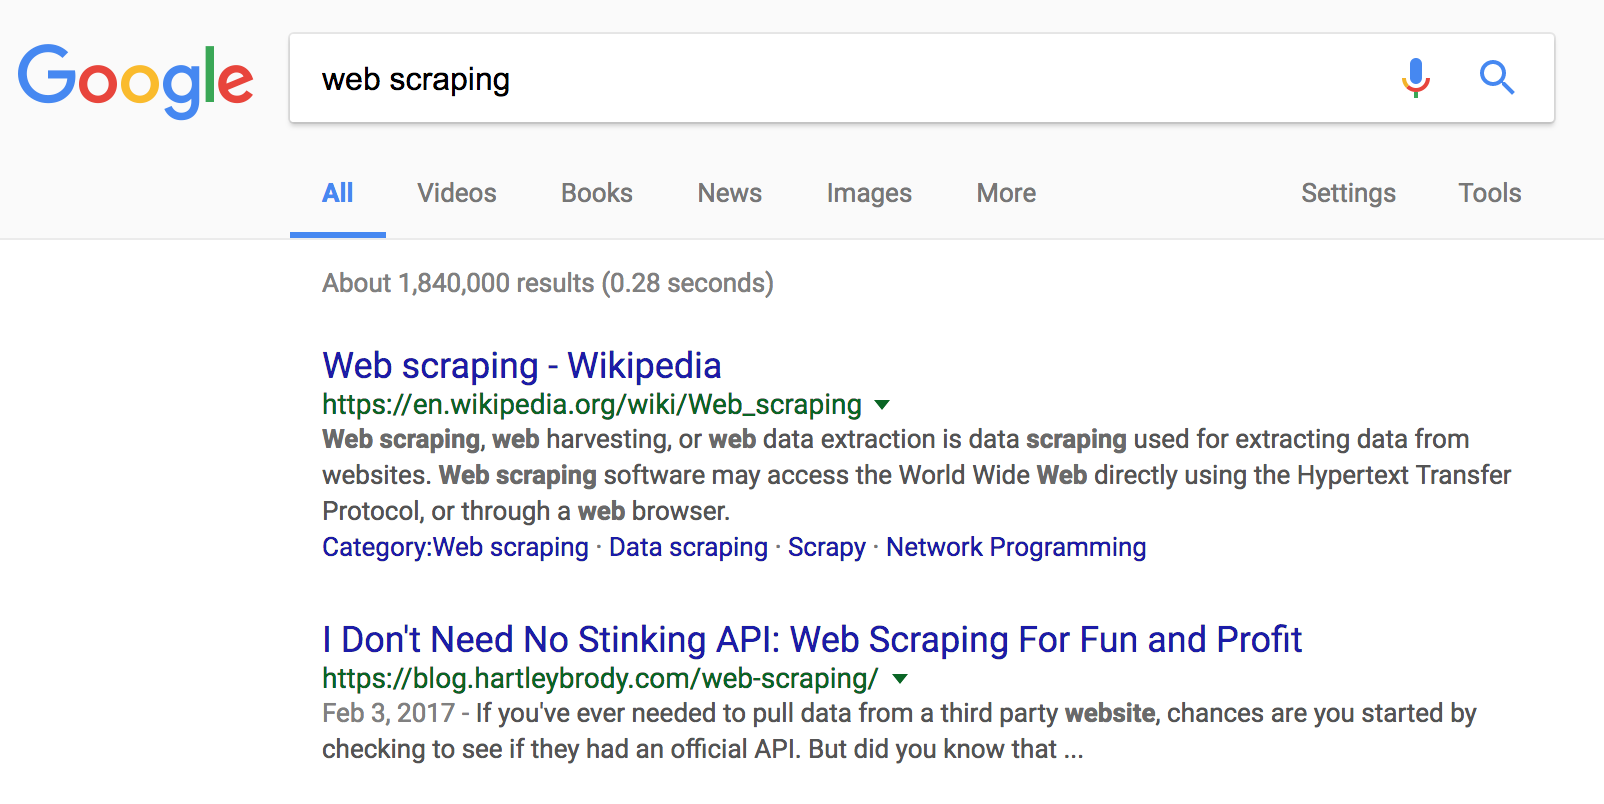 My articles tend to rank pretty well on 'web scraping' terms